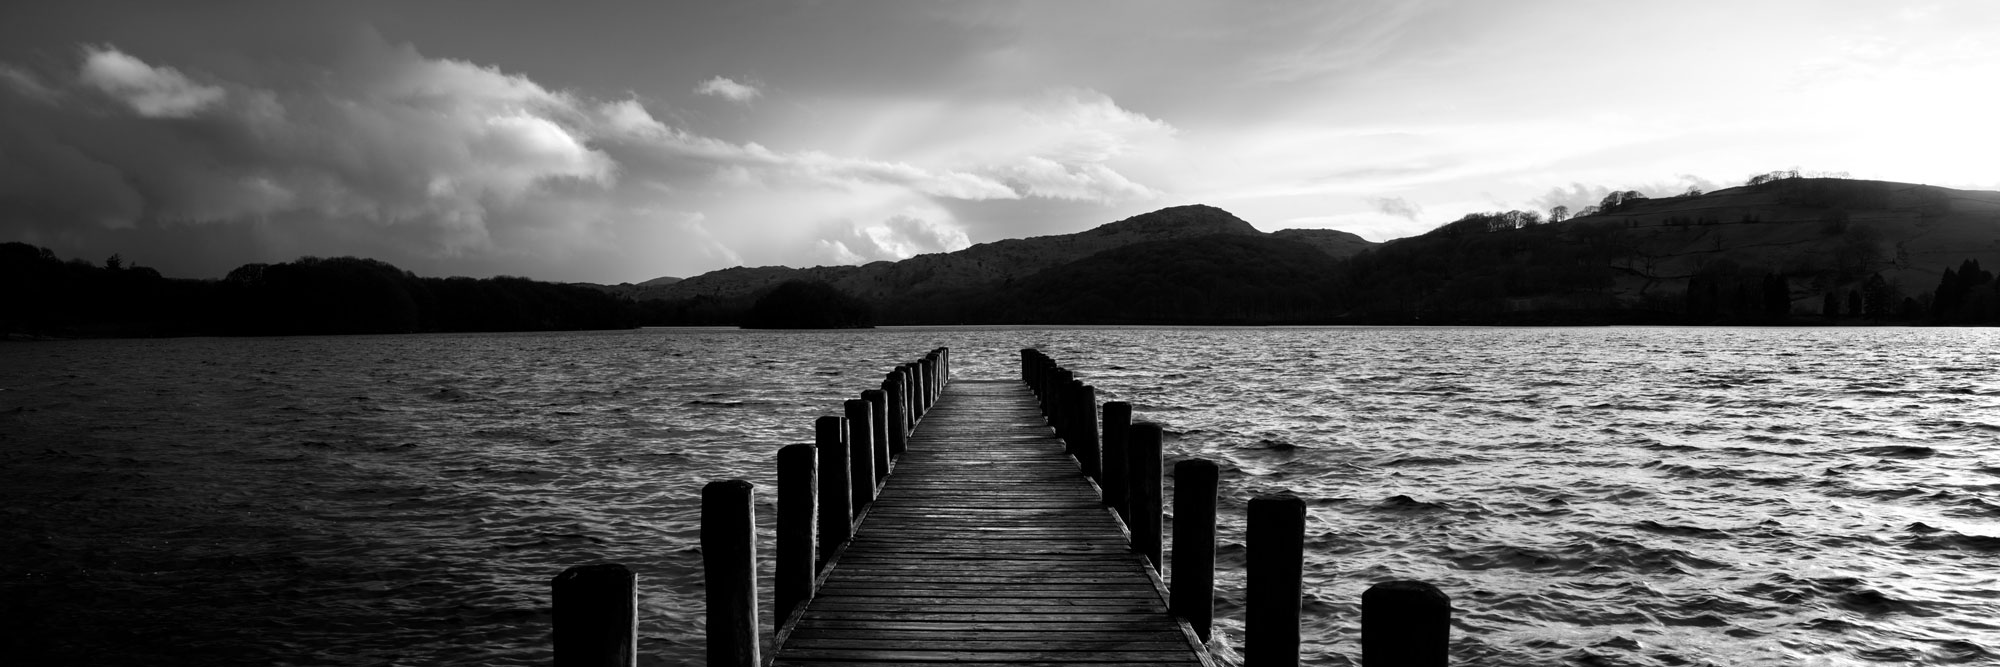 B&W panorama of a jetty in the lake district